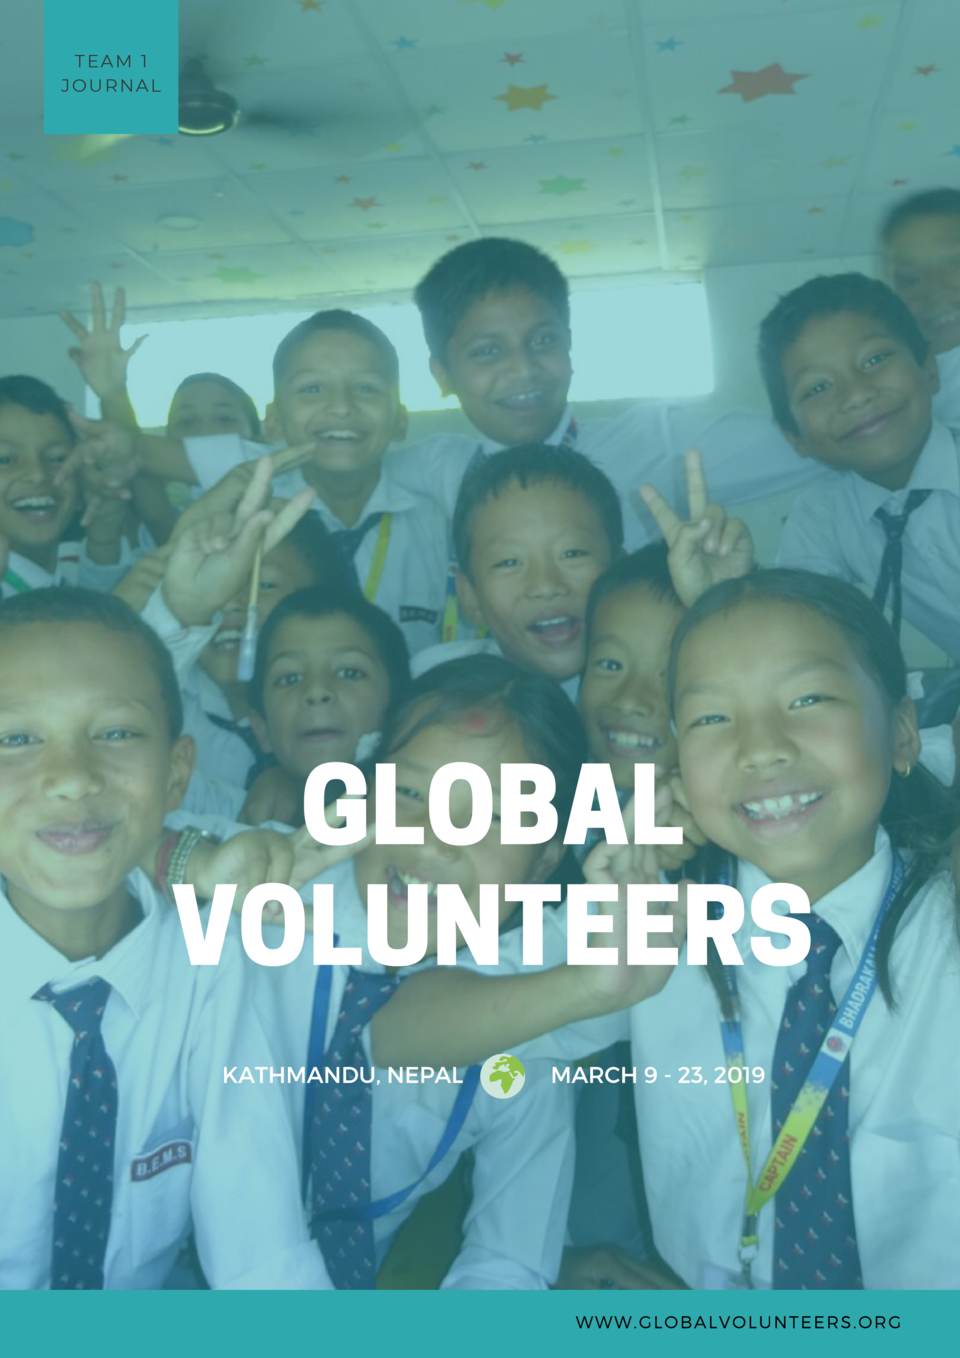 TEAM 1 JOURNAL  GLOBAL VOLUNTEERS KATHMANDU, NEPAL  MARCH 9 - 23, 2019  WWW.GLOBALVOLUNTEERS.ORG